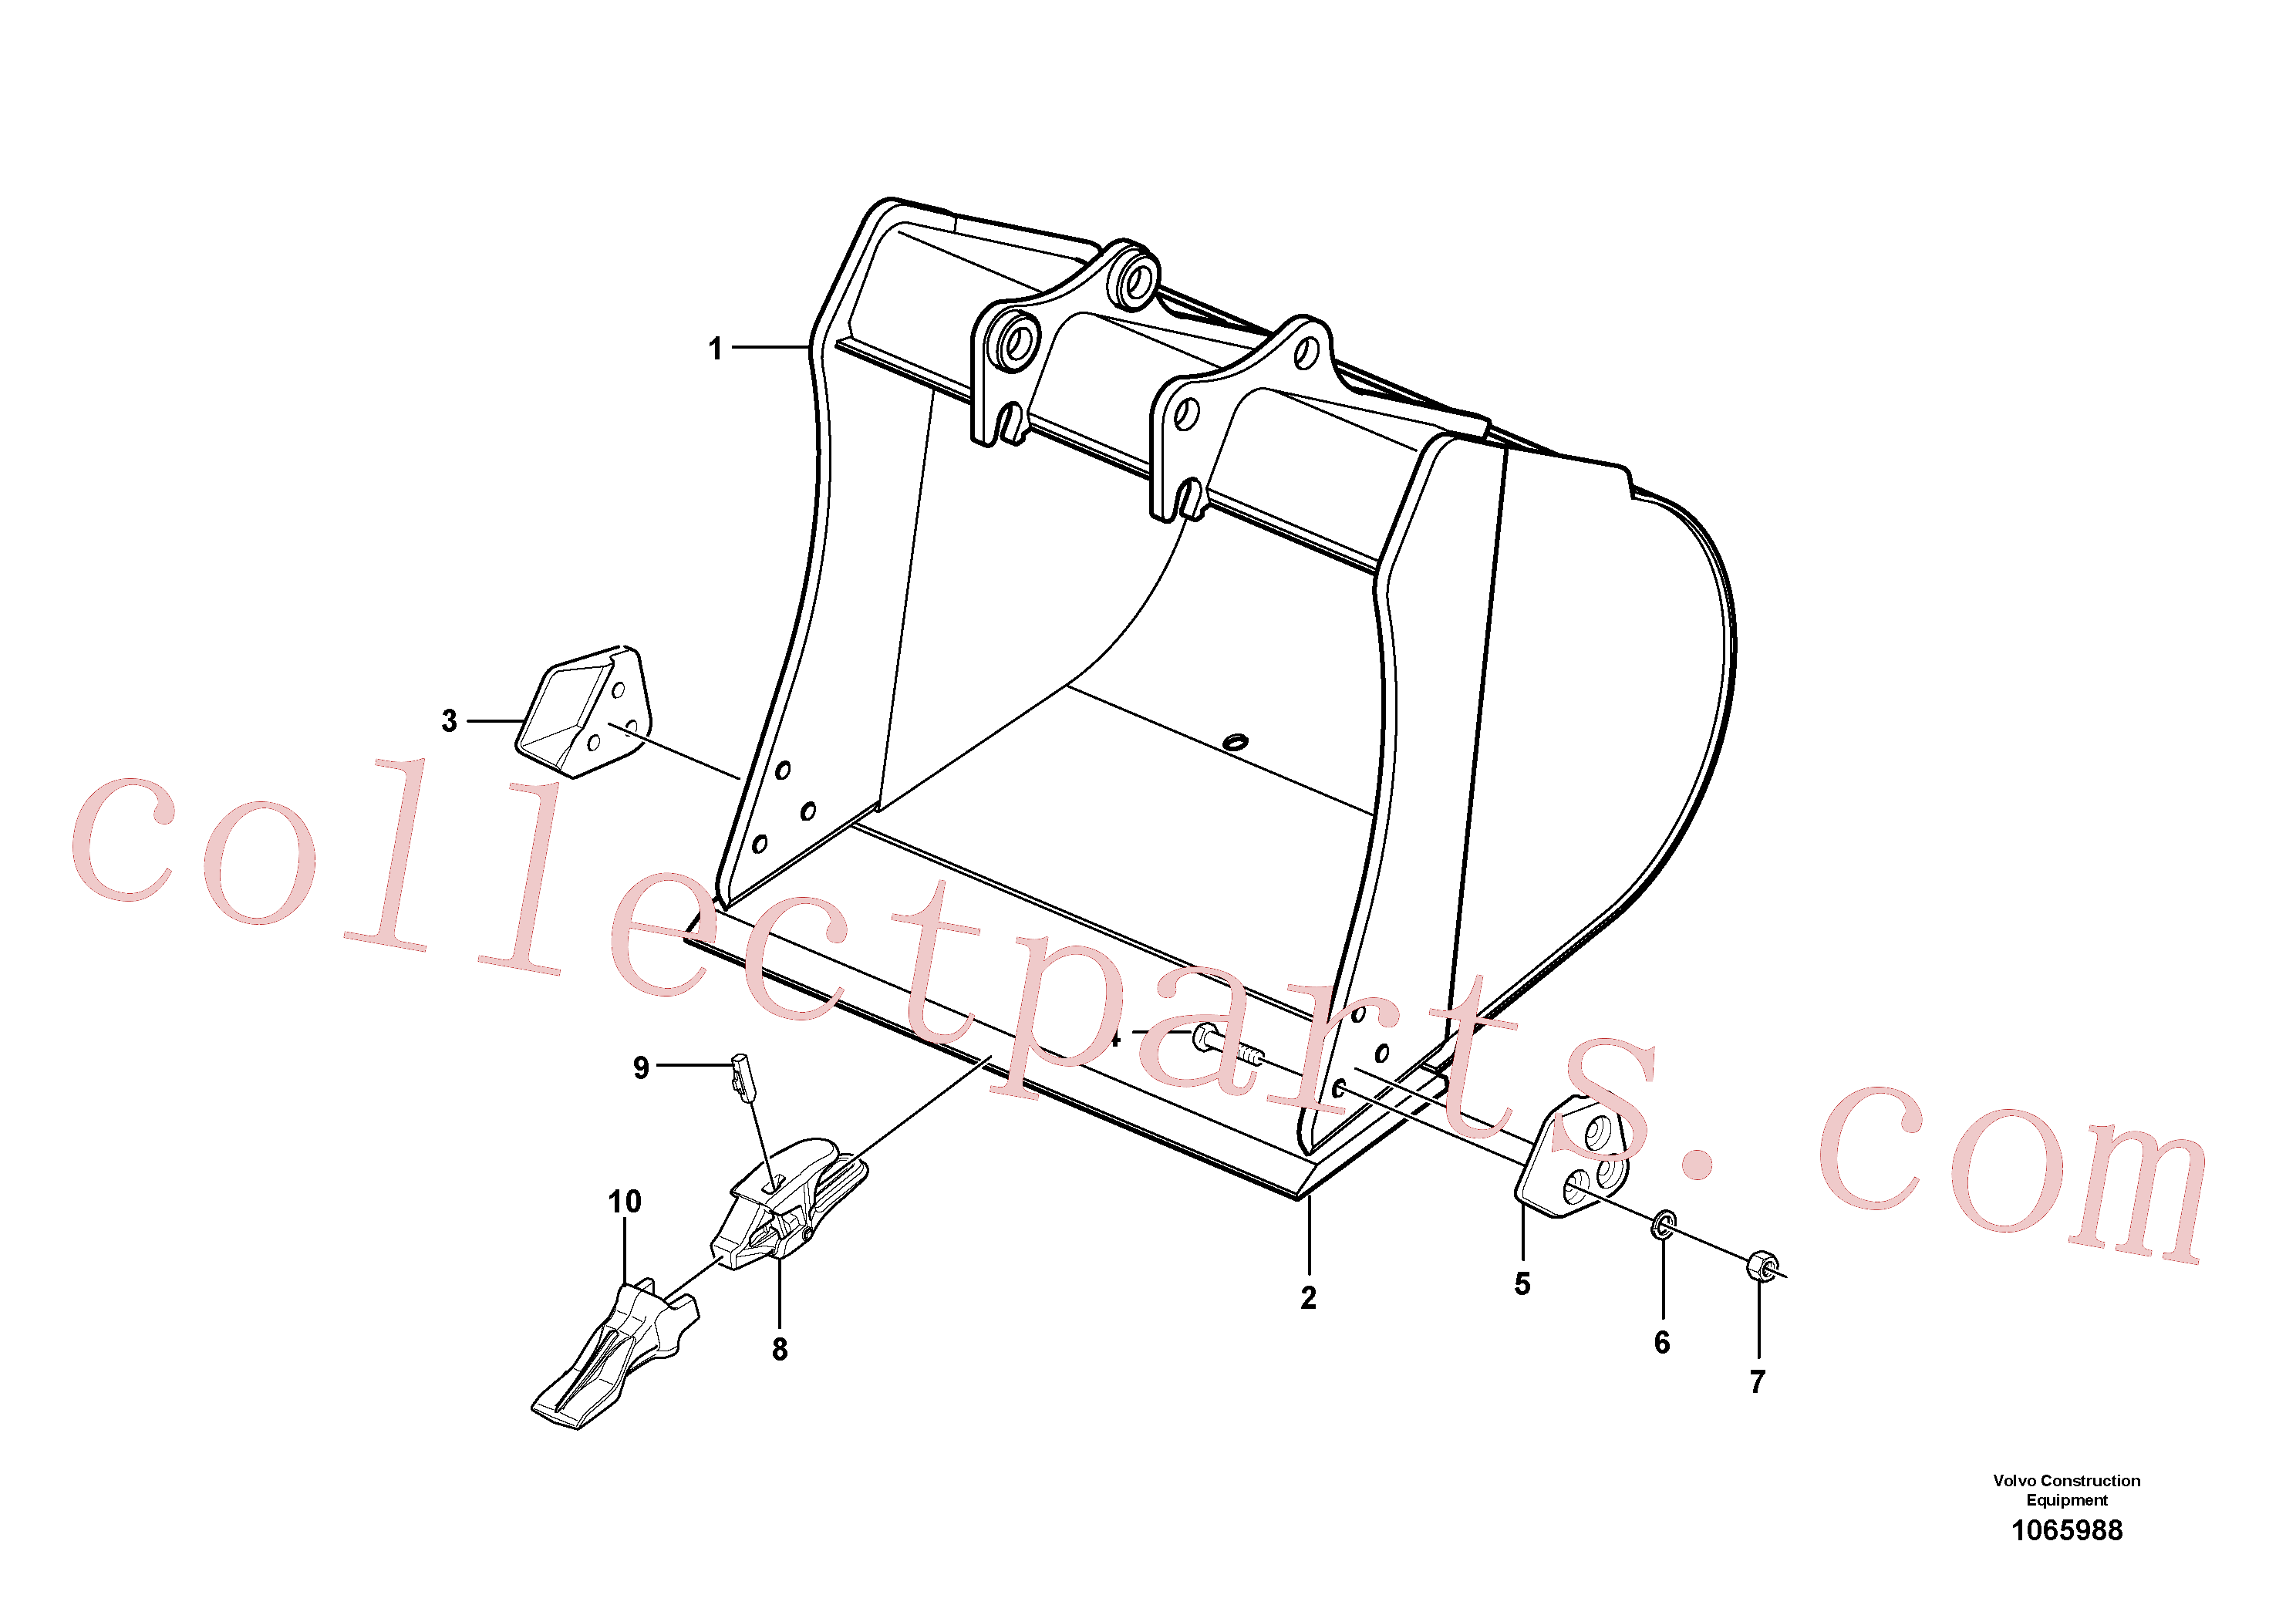 VOE15614395 for Volvo Bucket(1065988 assembly)